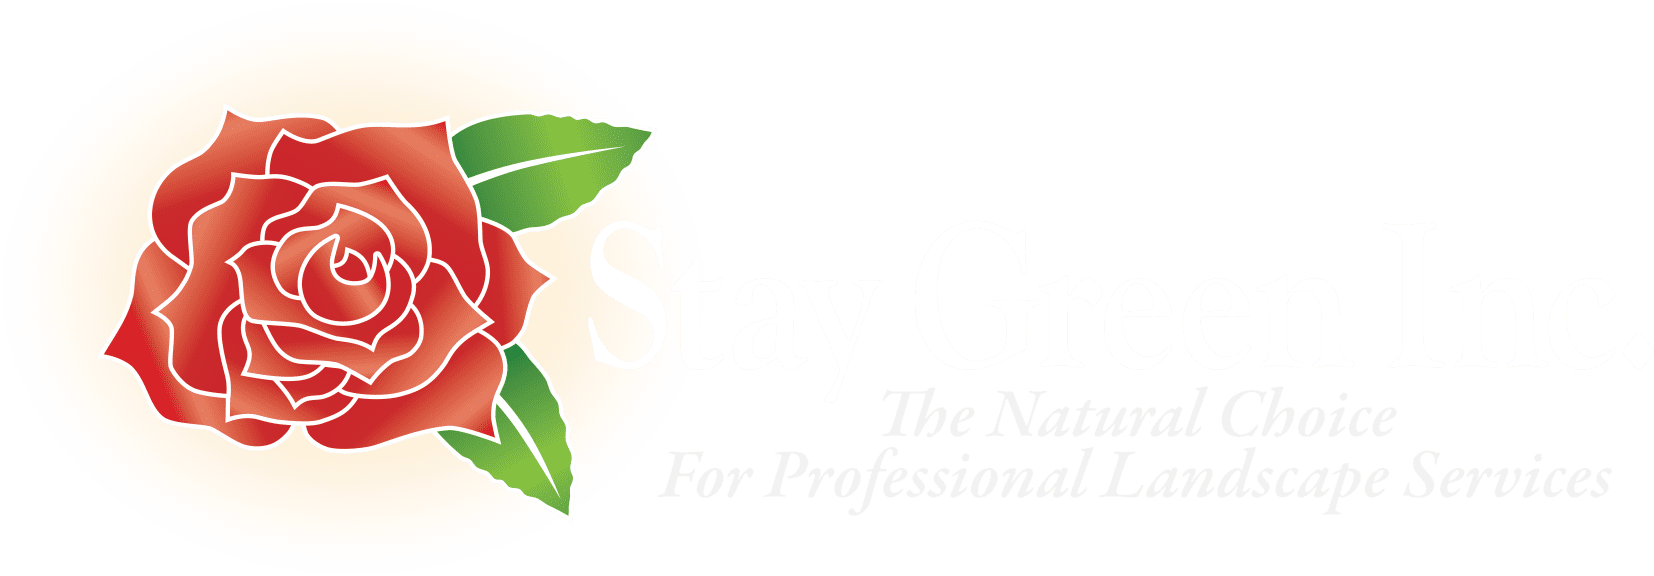 Stay Green Inc.